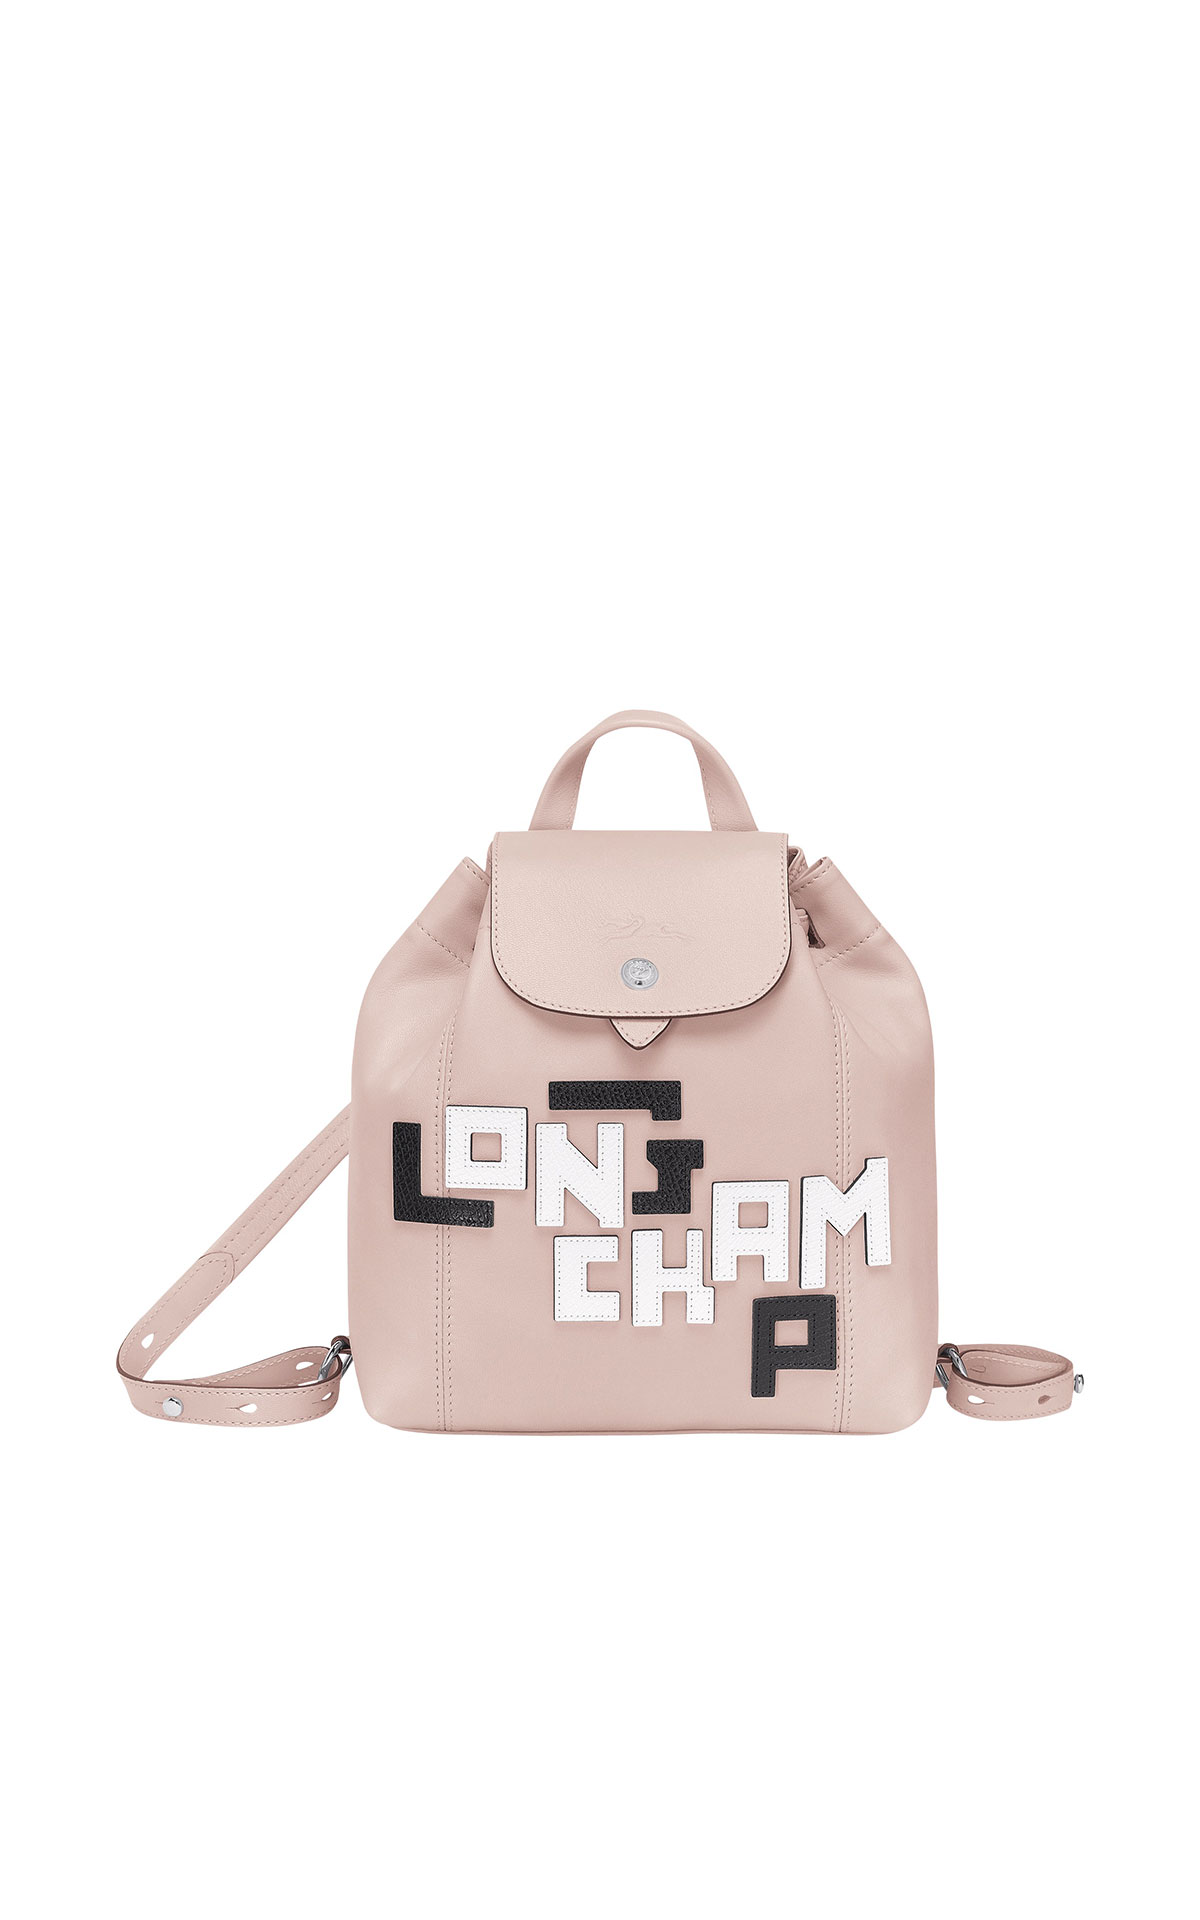 Longchamp Small leather Le Pliage backpack with leather top-stitched Longchamp logo from Bicester Village